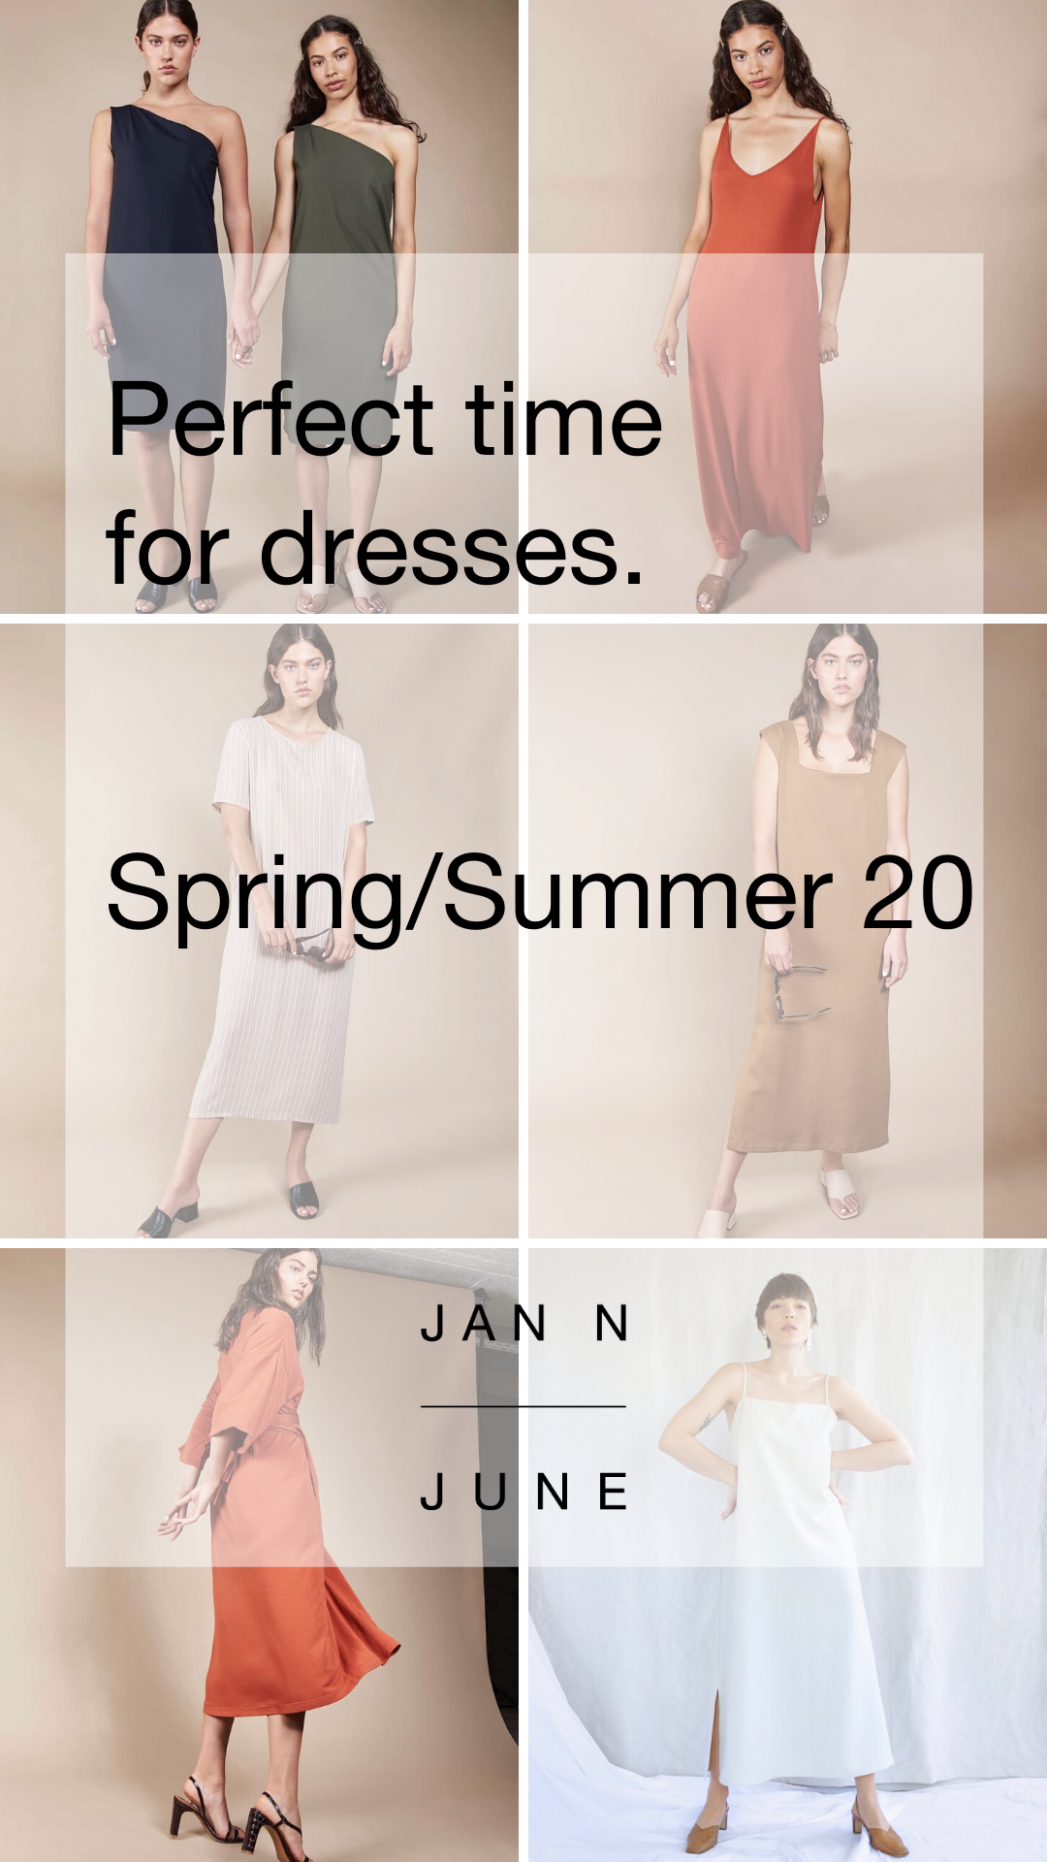 perfect time for dresses is now nachhaltige mode, kleider, mode nachhaltige kleider